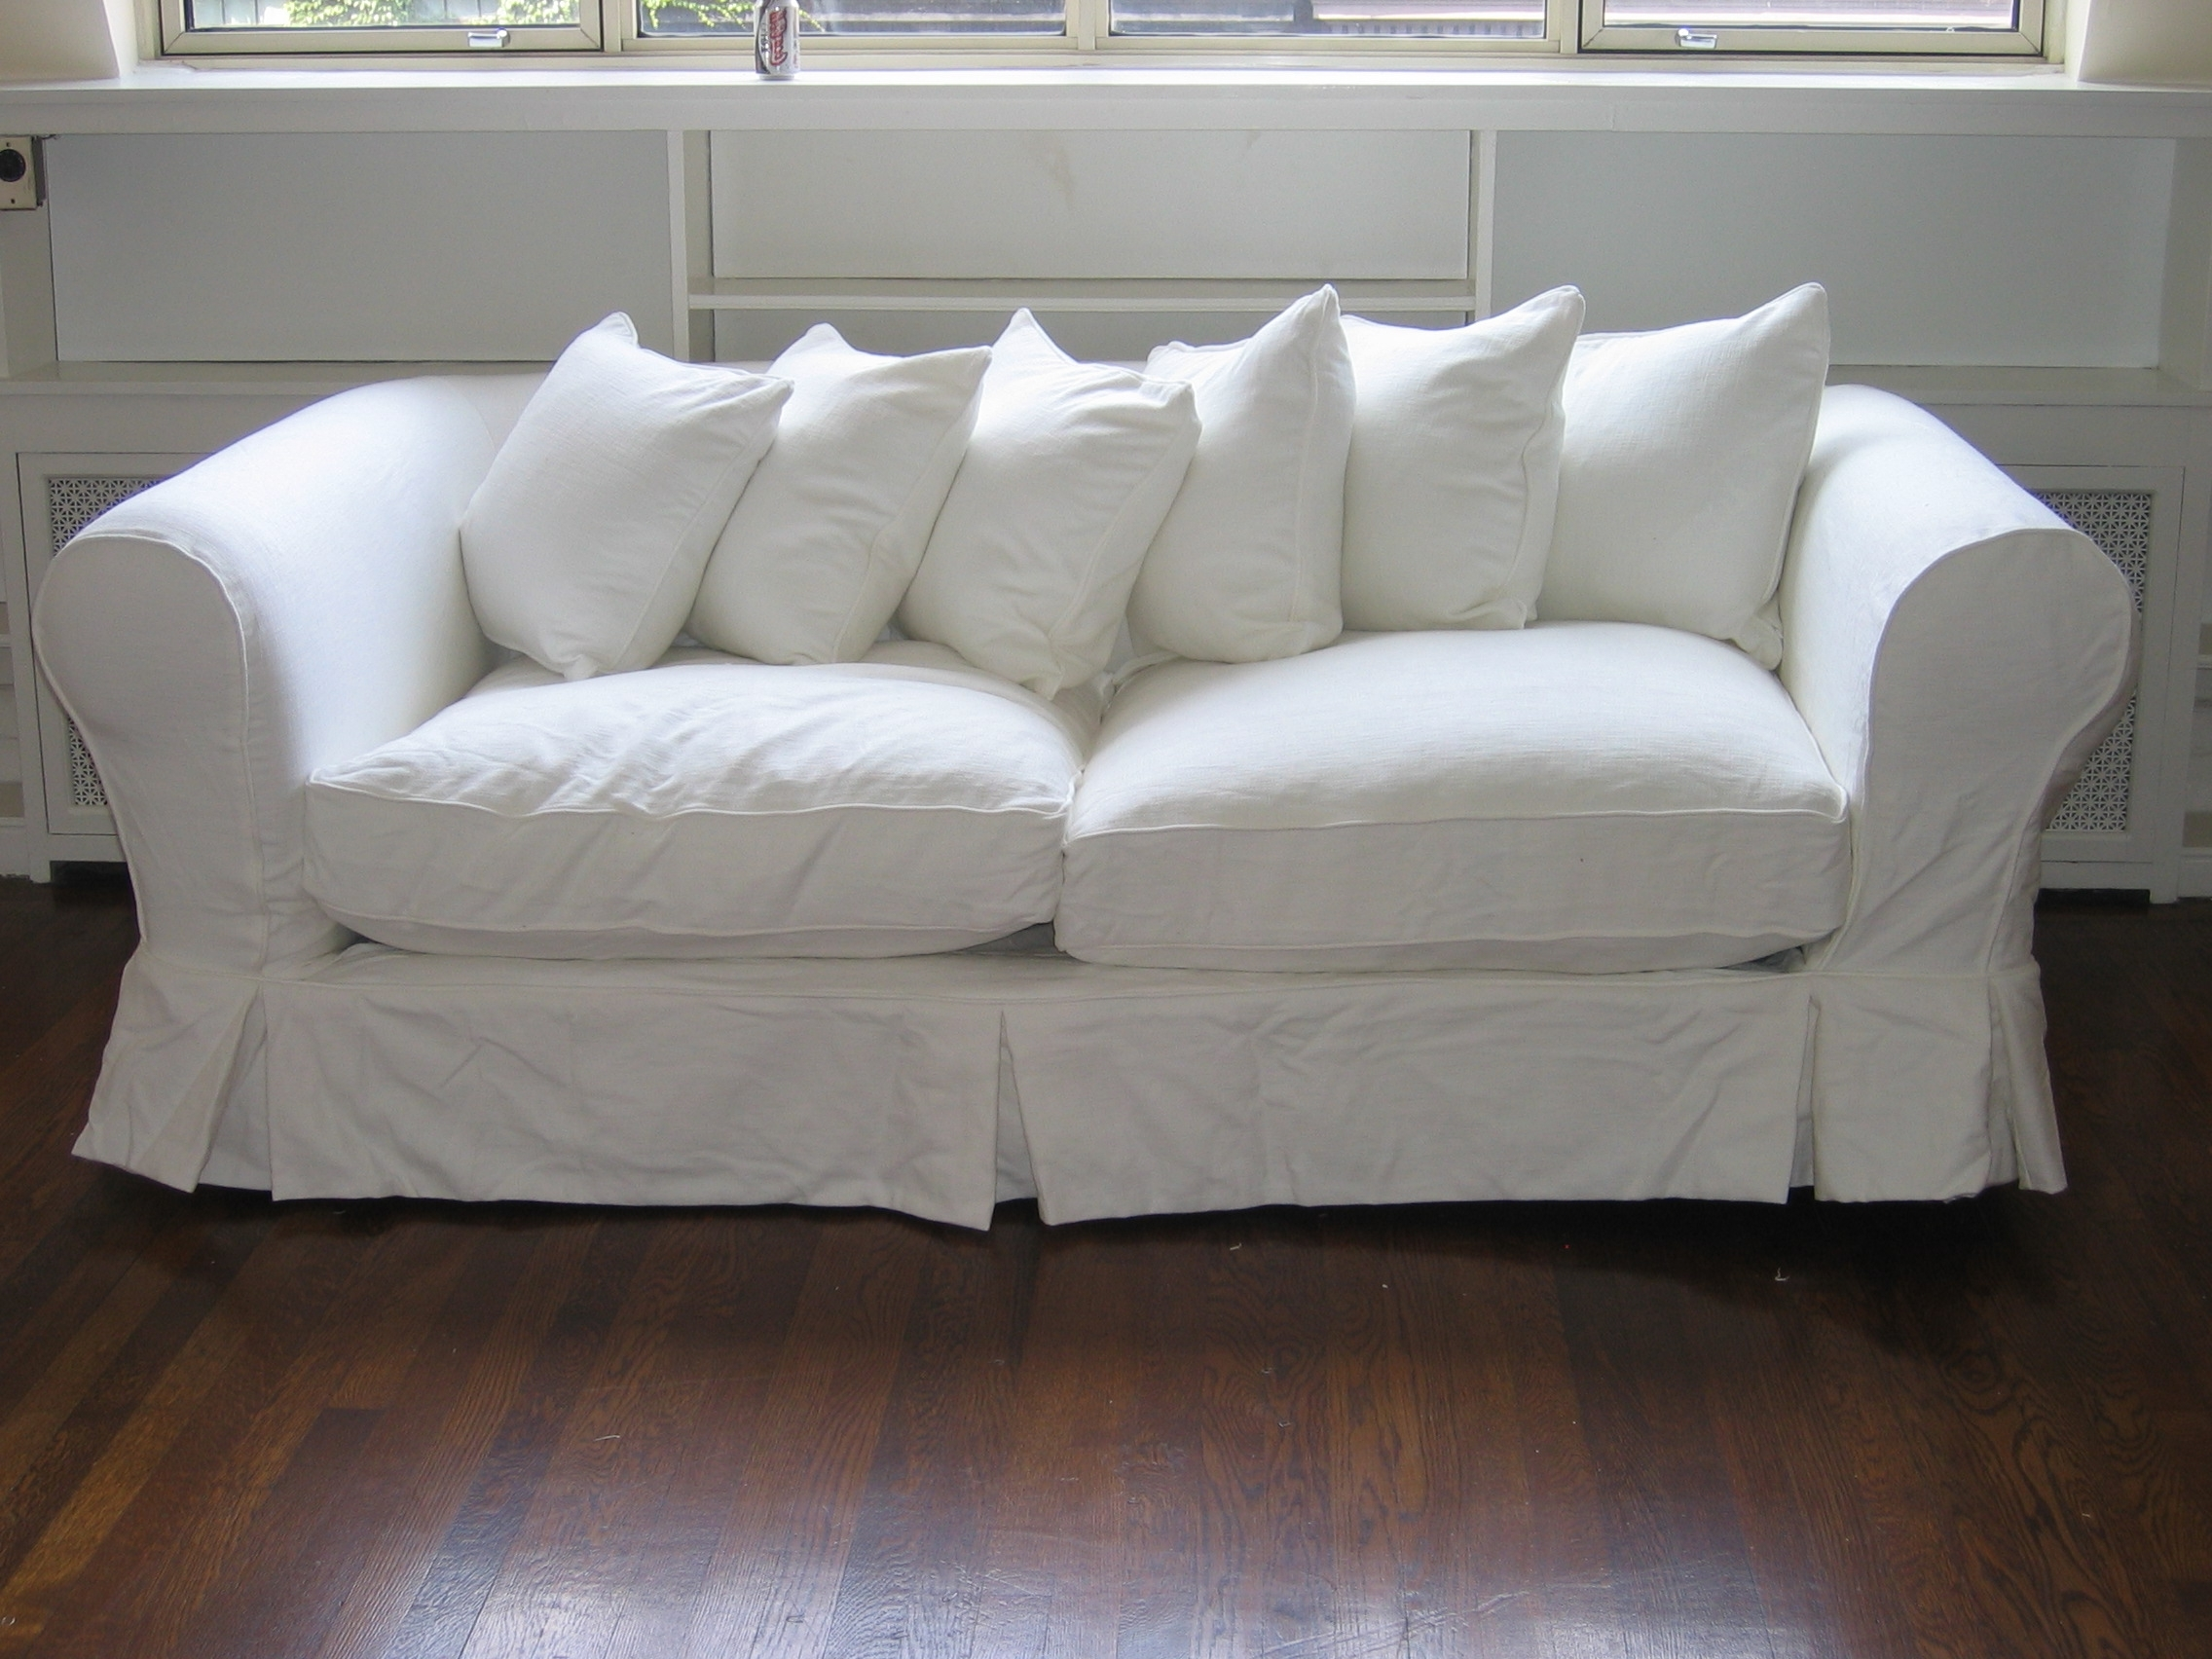 Newest Sofa : Ikea Sofa Reviews Couch For Sale Best Ikea Couch Reddit With Regard To Overstuffed Sofas And Chairs (View 6 of 20)